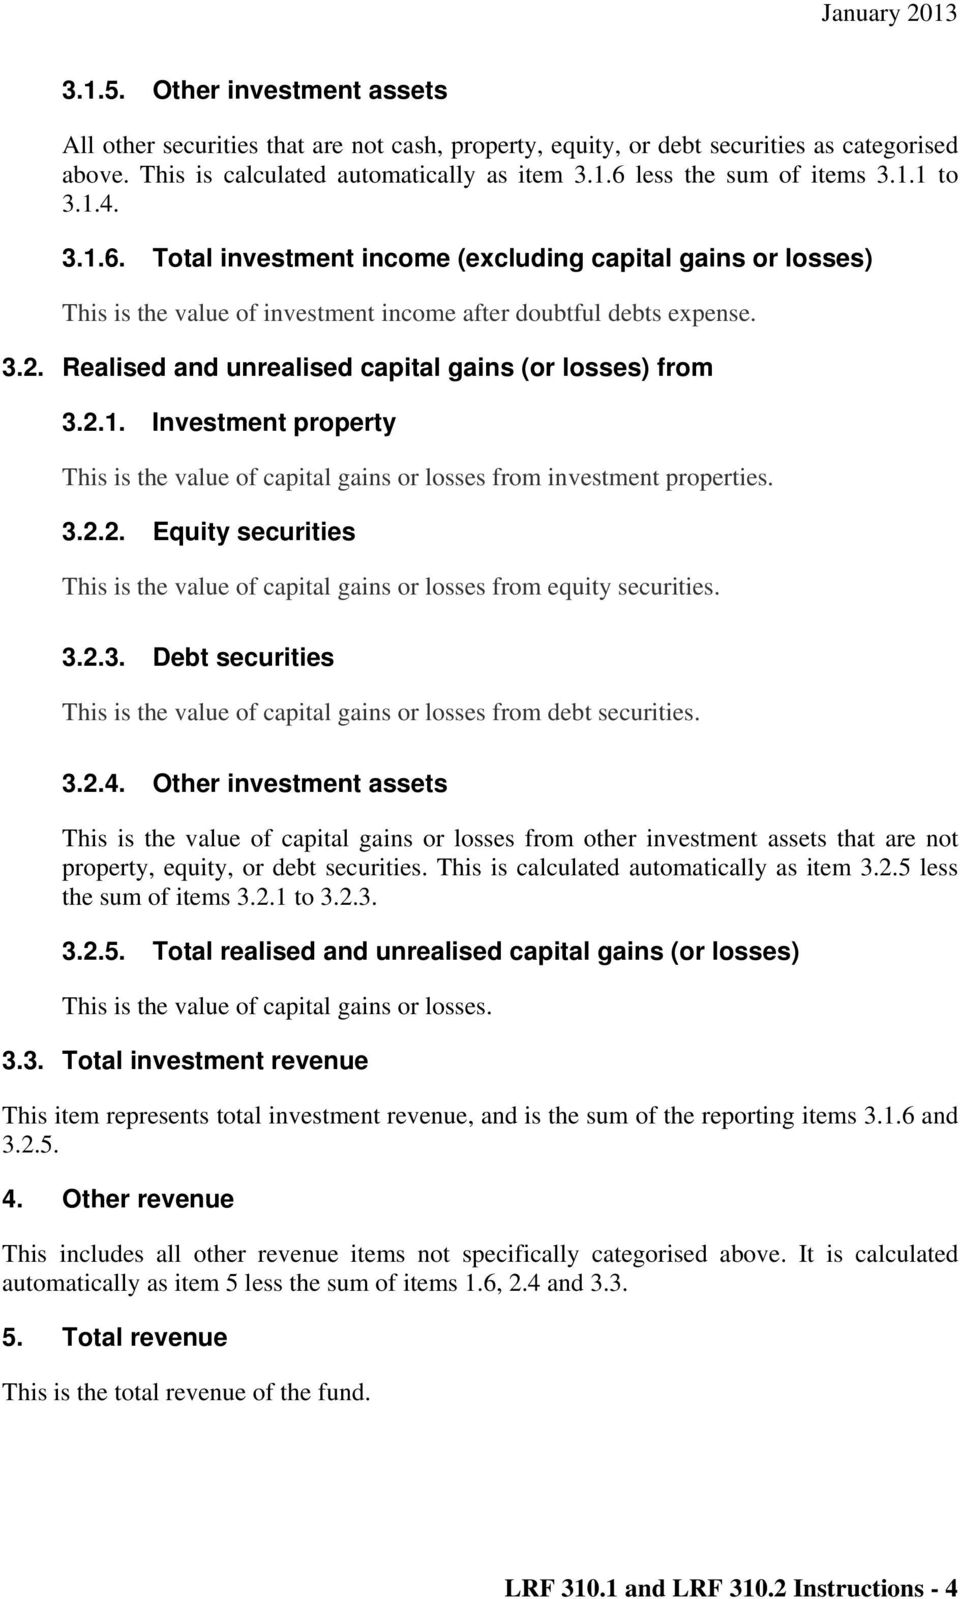 Realised and unrealised capital gains (or losses) from 3.2.1. Investment property This is the value of capital gains or losses from investment properties. 3.2.2. Equity securities This is the value of capital gains or losses from equity securities.